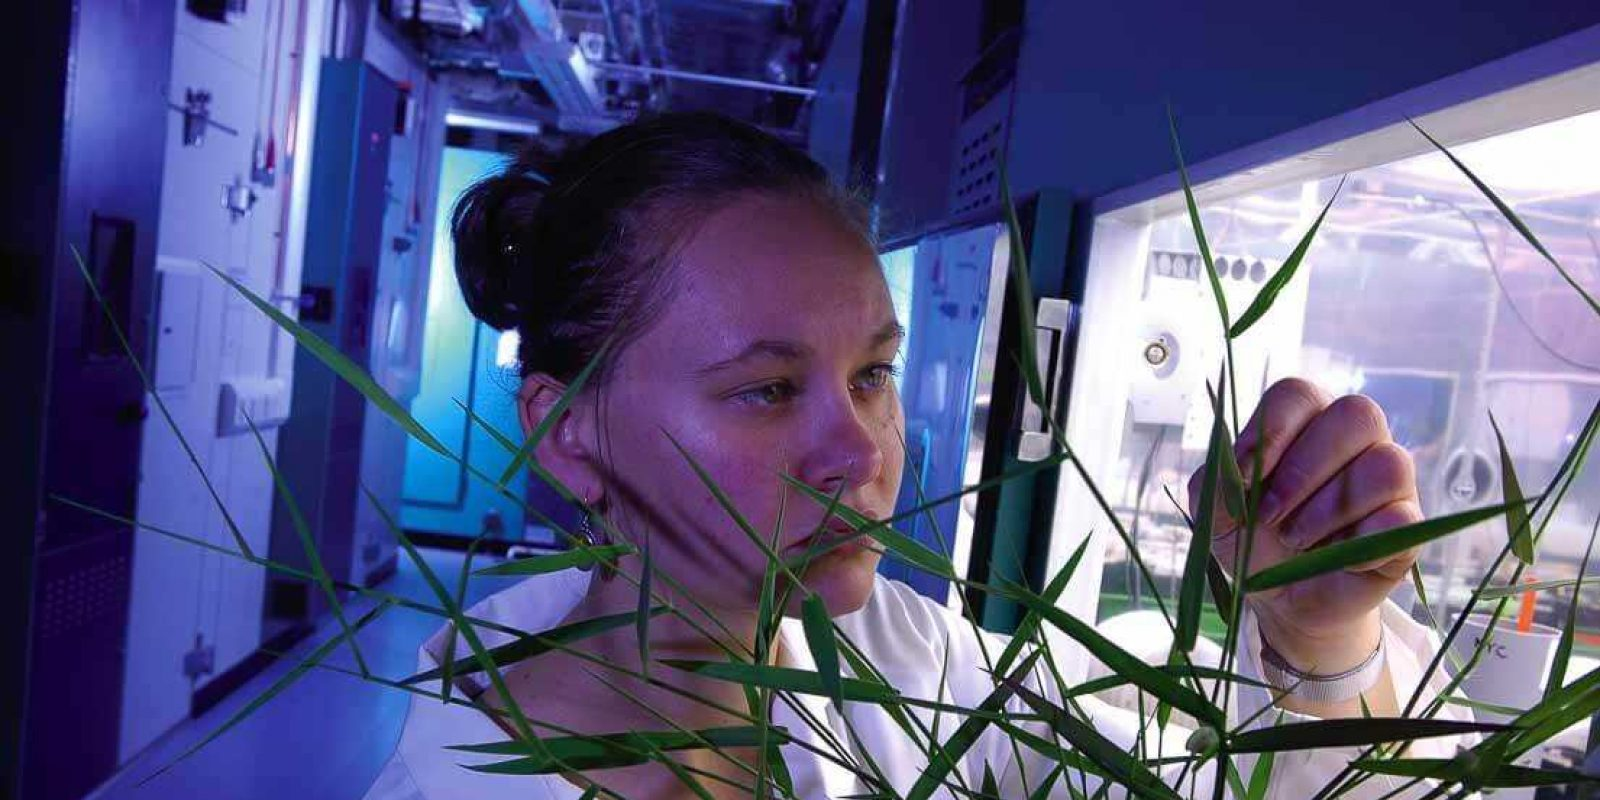 sheffield-university-researcher-plant-growth-room 9